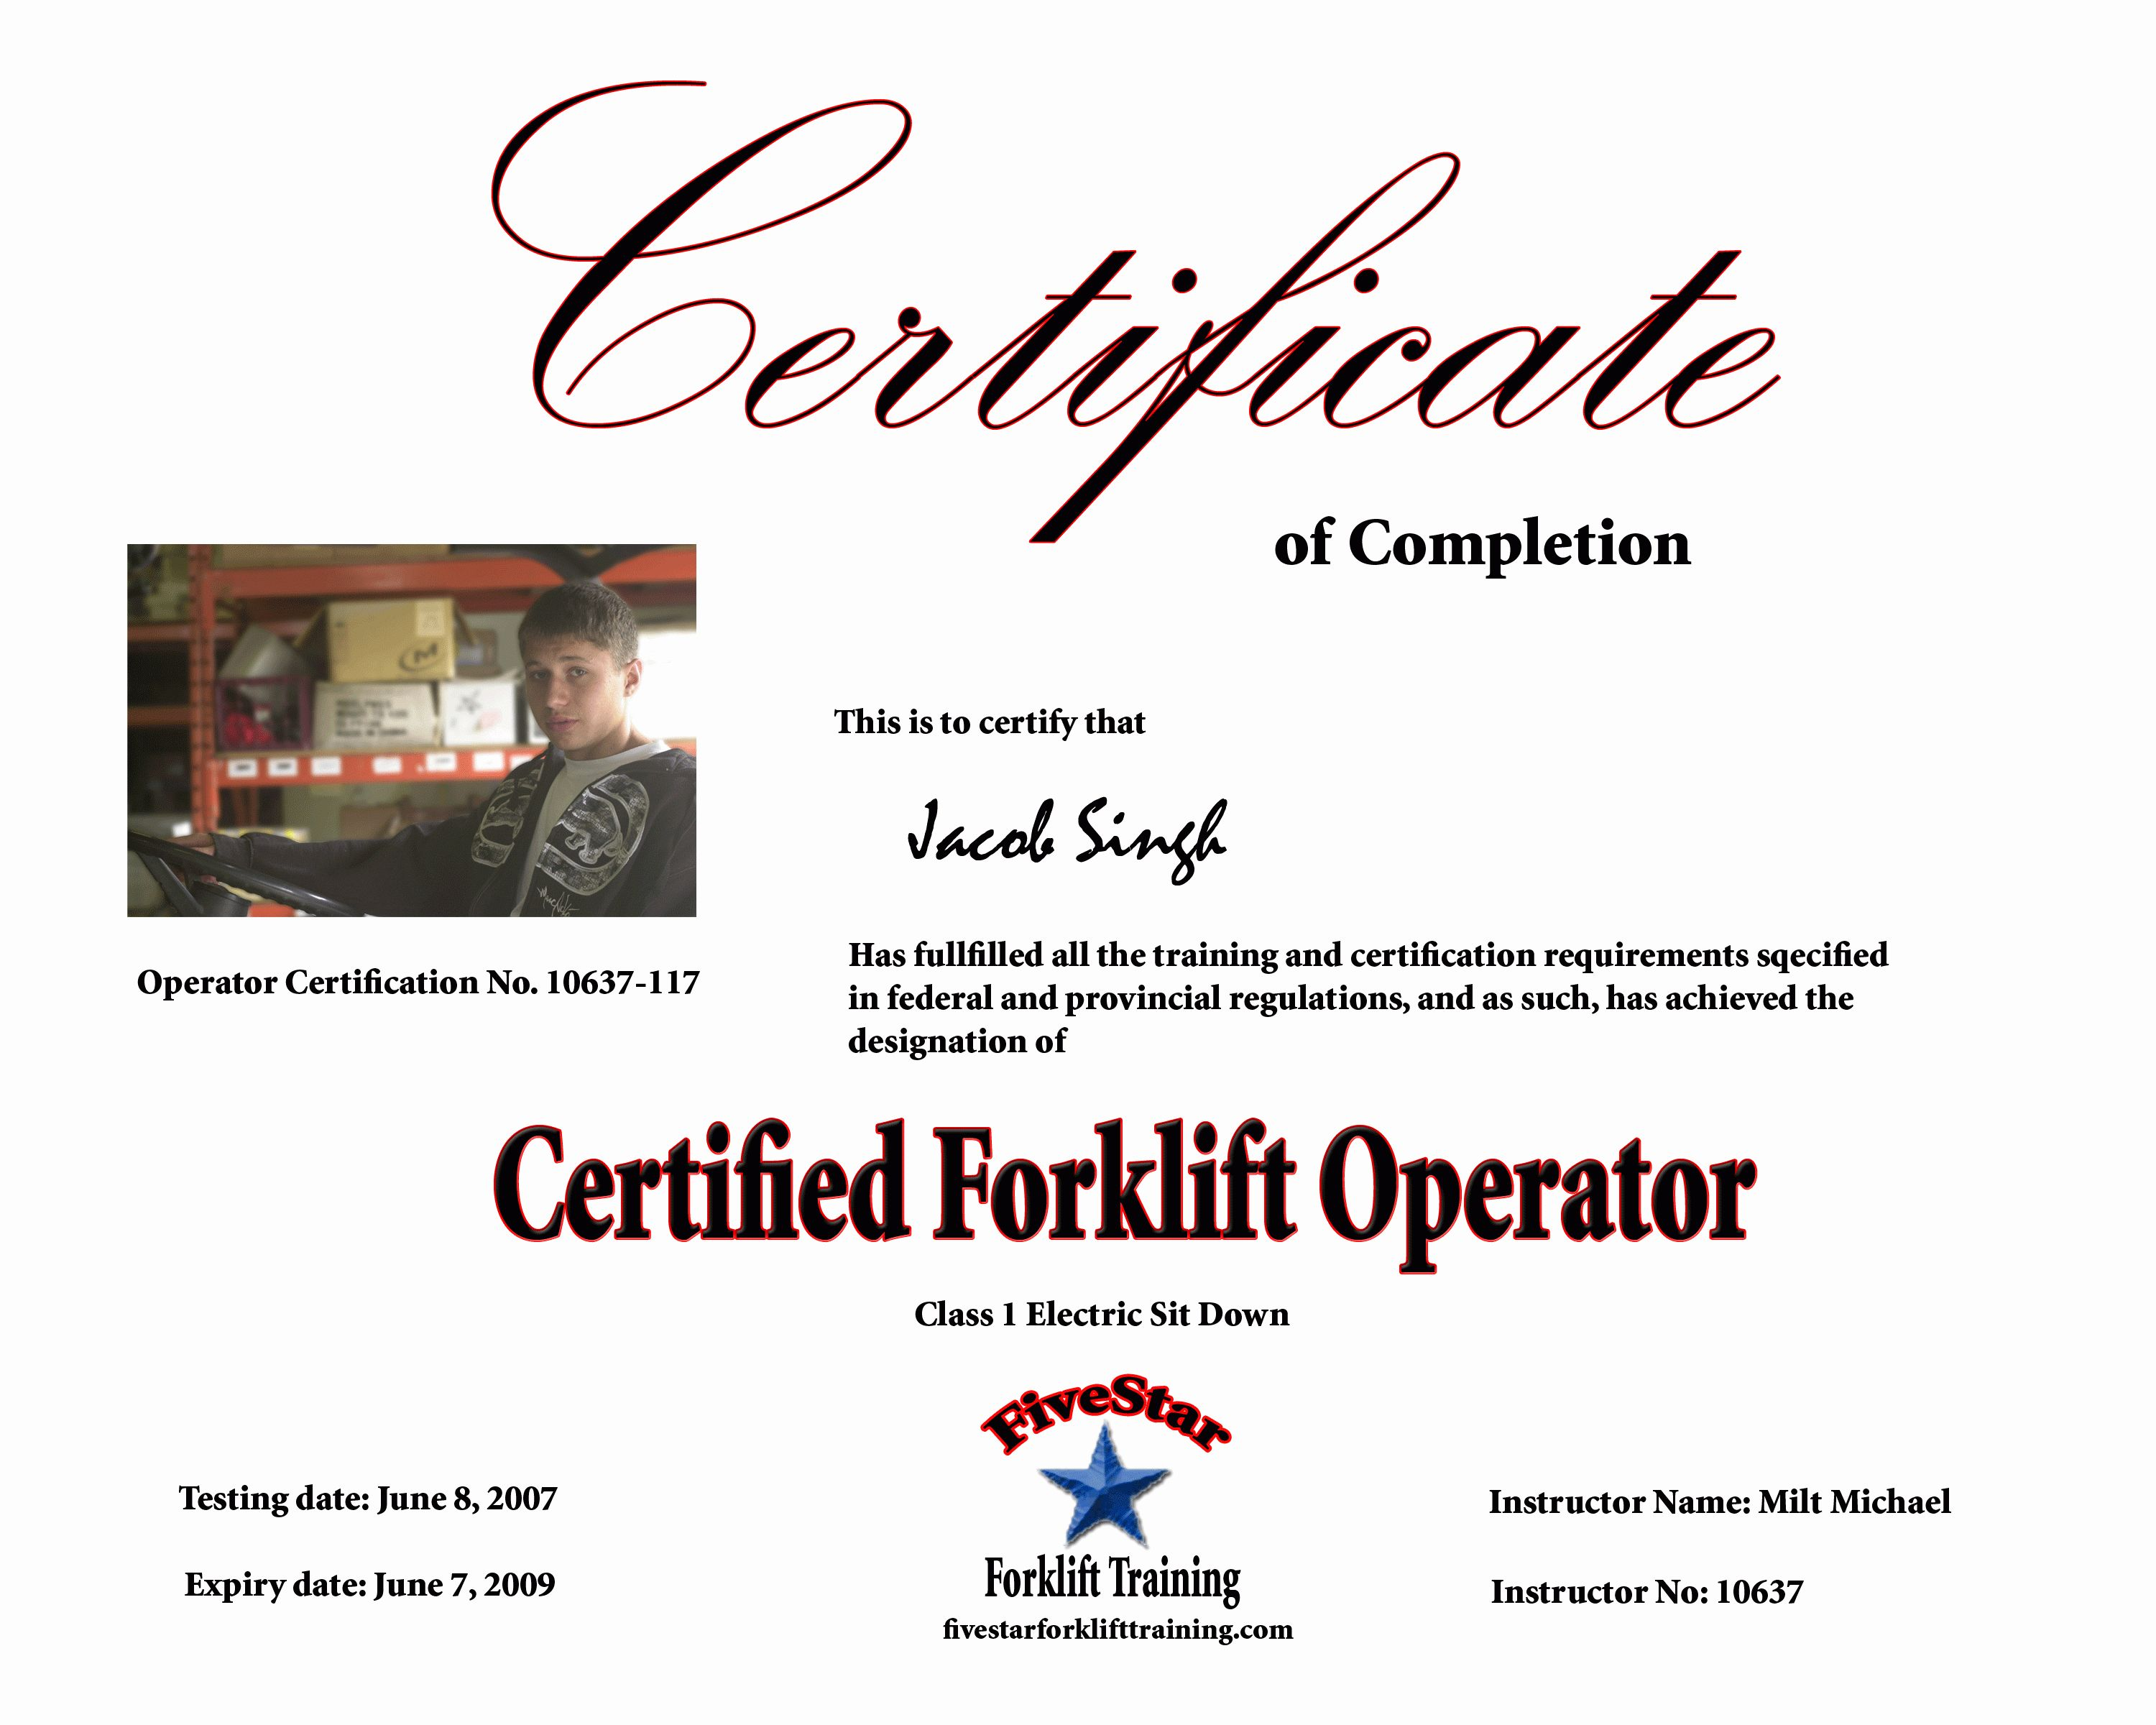 Free Printable Forklift License Template And Forklift Certification For Forklift Certification Certificate Templates Card Templates Free Professional Templates Forklift certification card template free